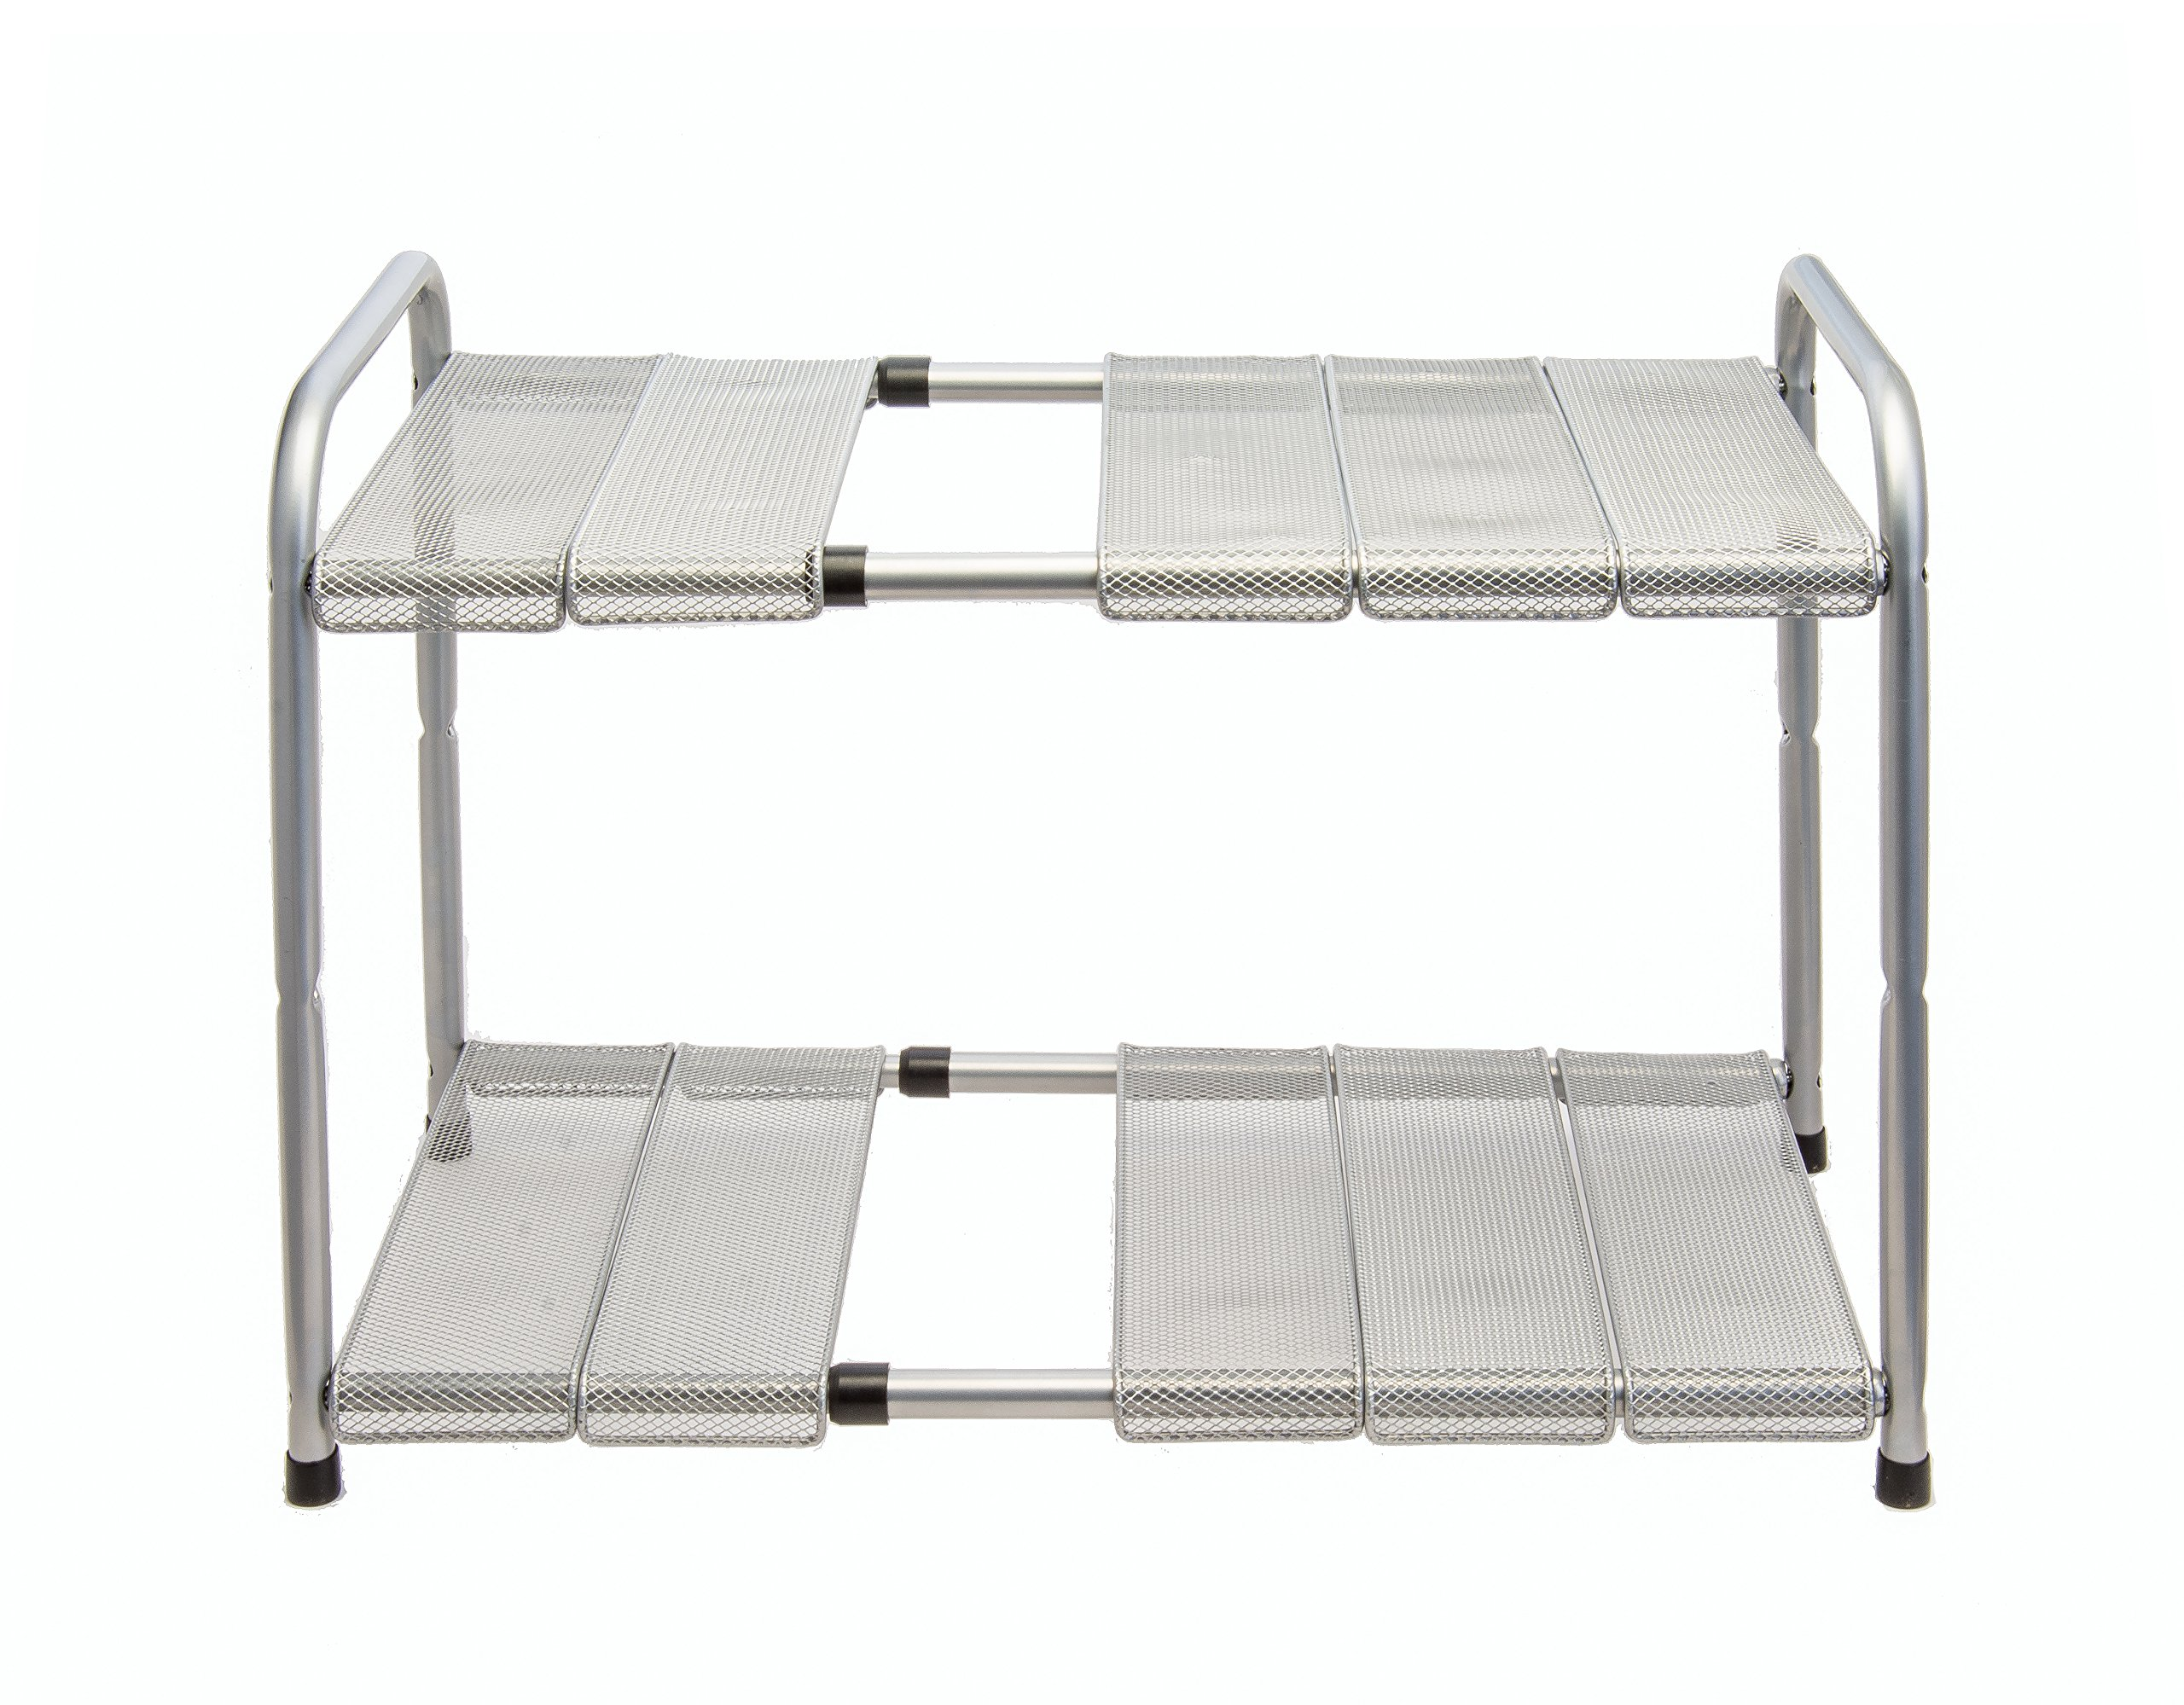 Venoly Expandable Under Sink Organizer - 2 Tier Storage Rack With Movable and Customizeable Shelves to Make Space for Pipes - Carbon Steel - By